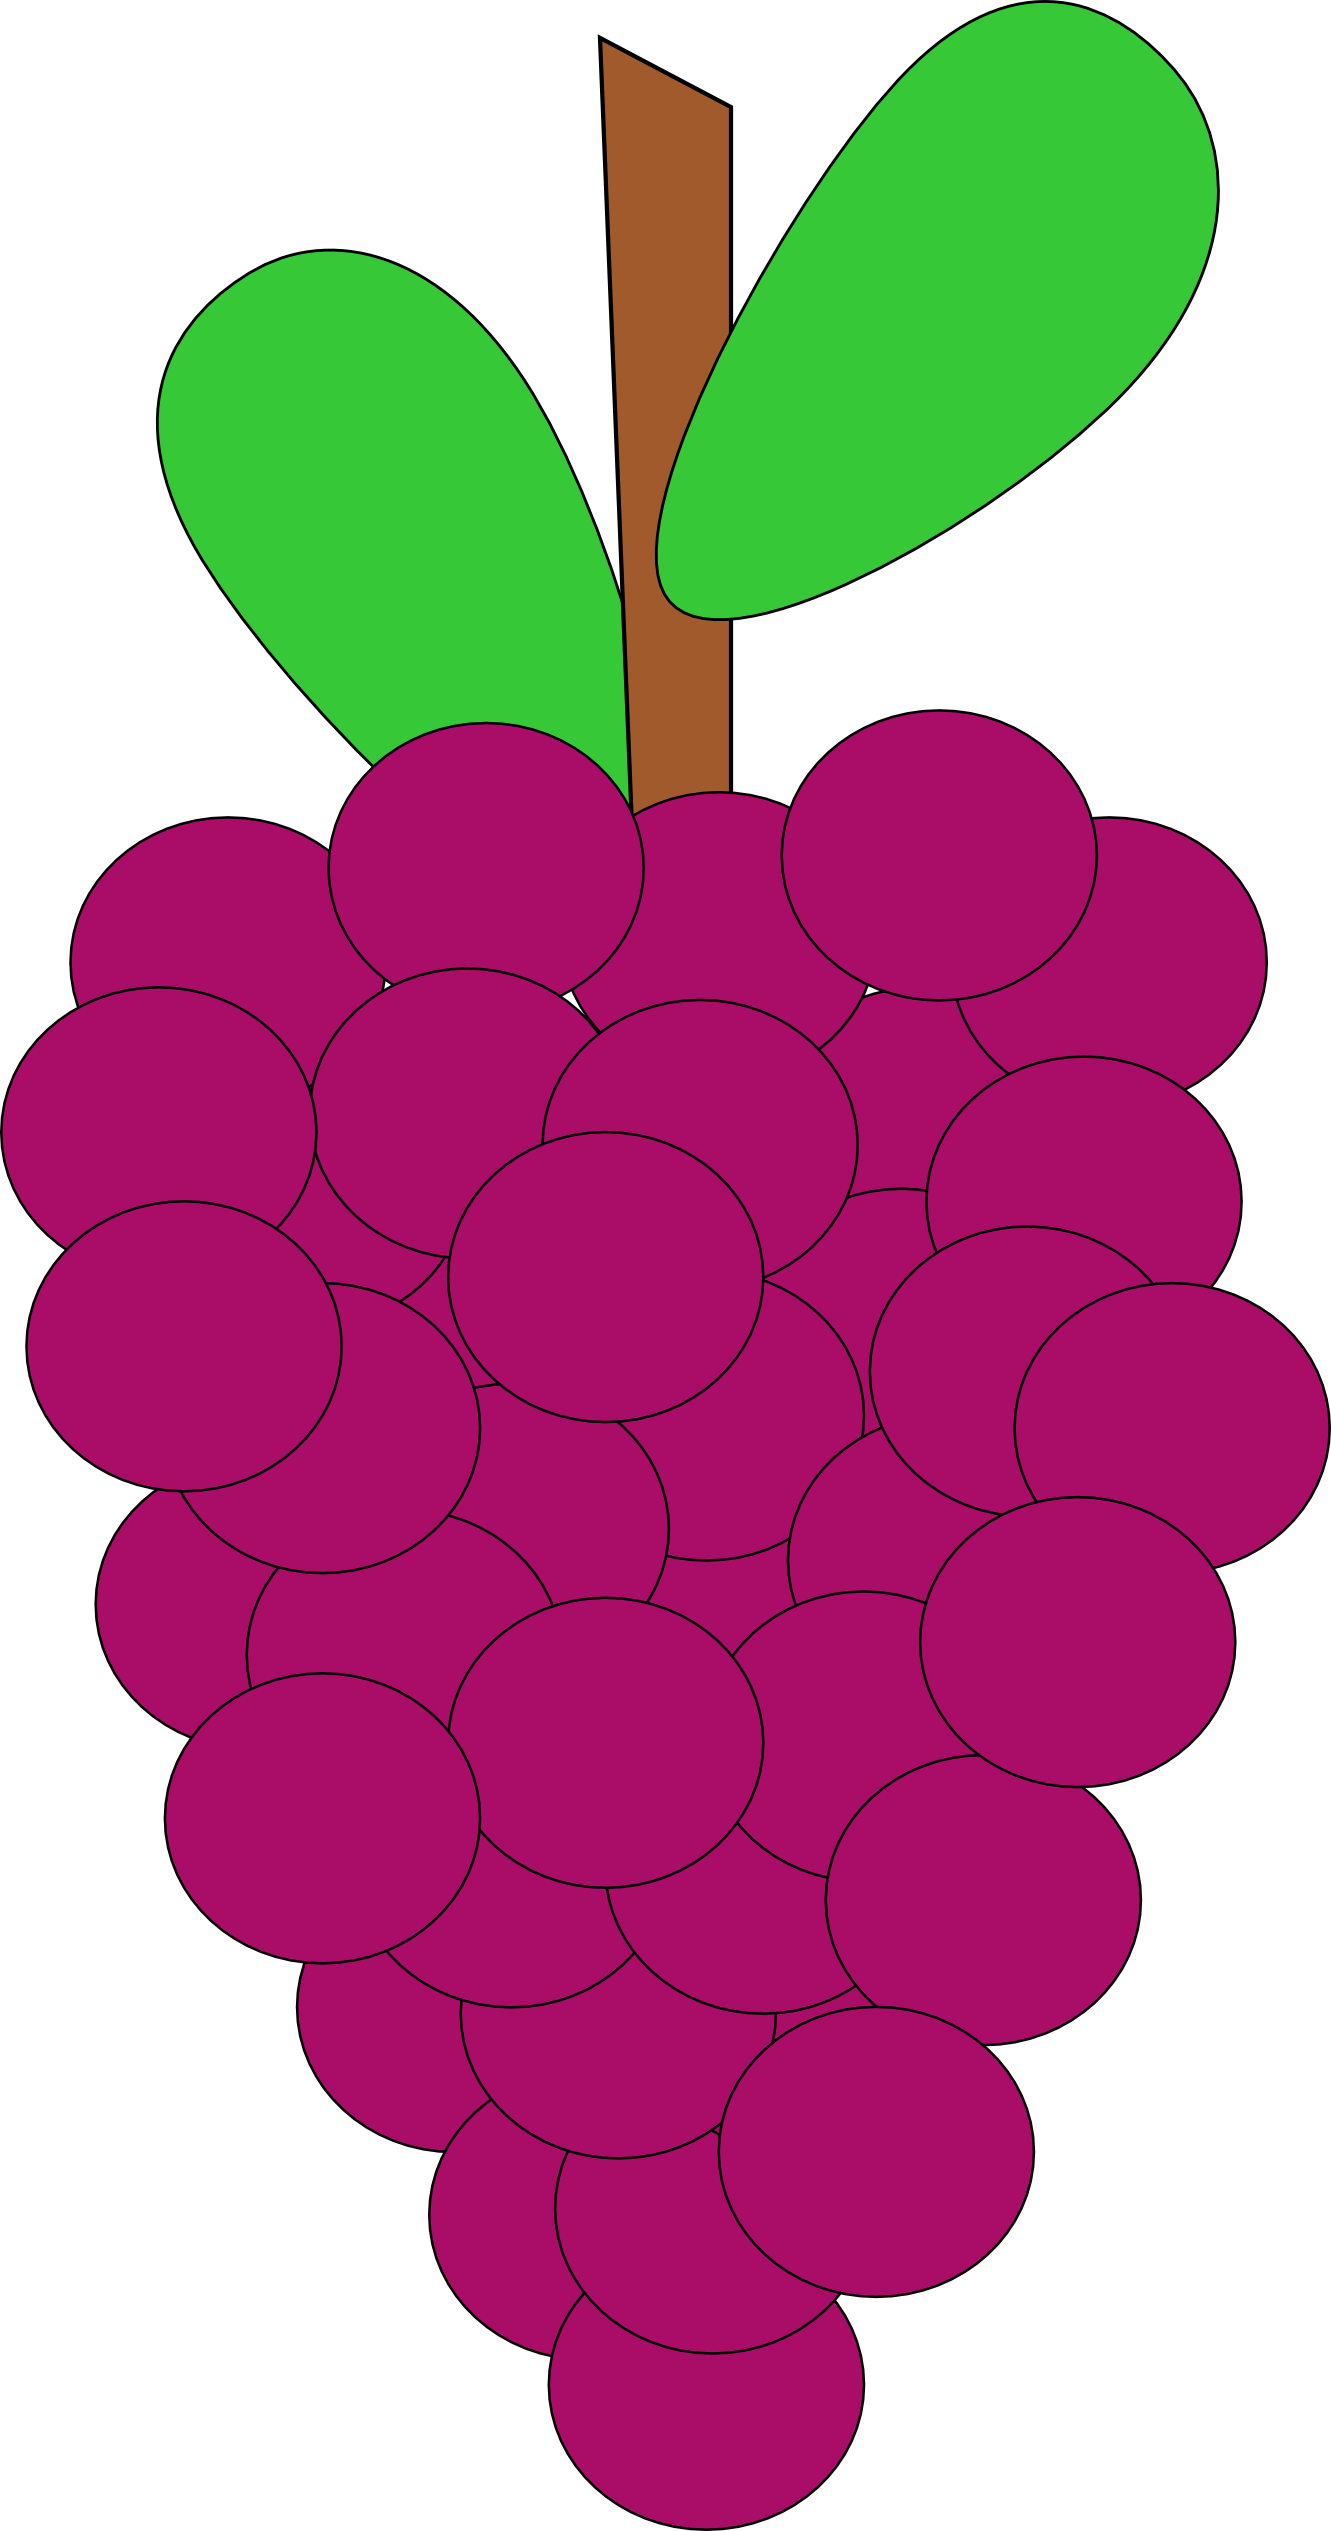 Grapes clipart grape fruit clip art downloadclipart org